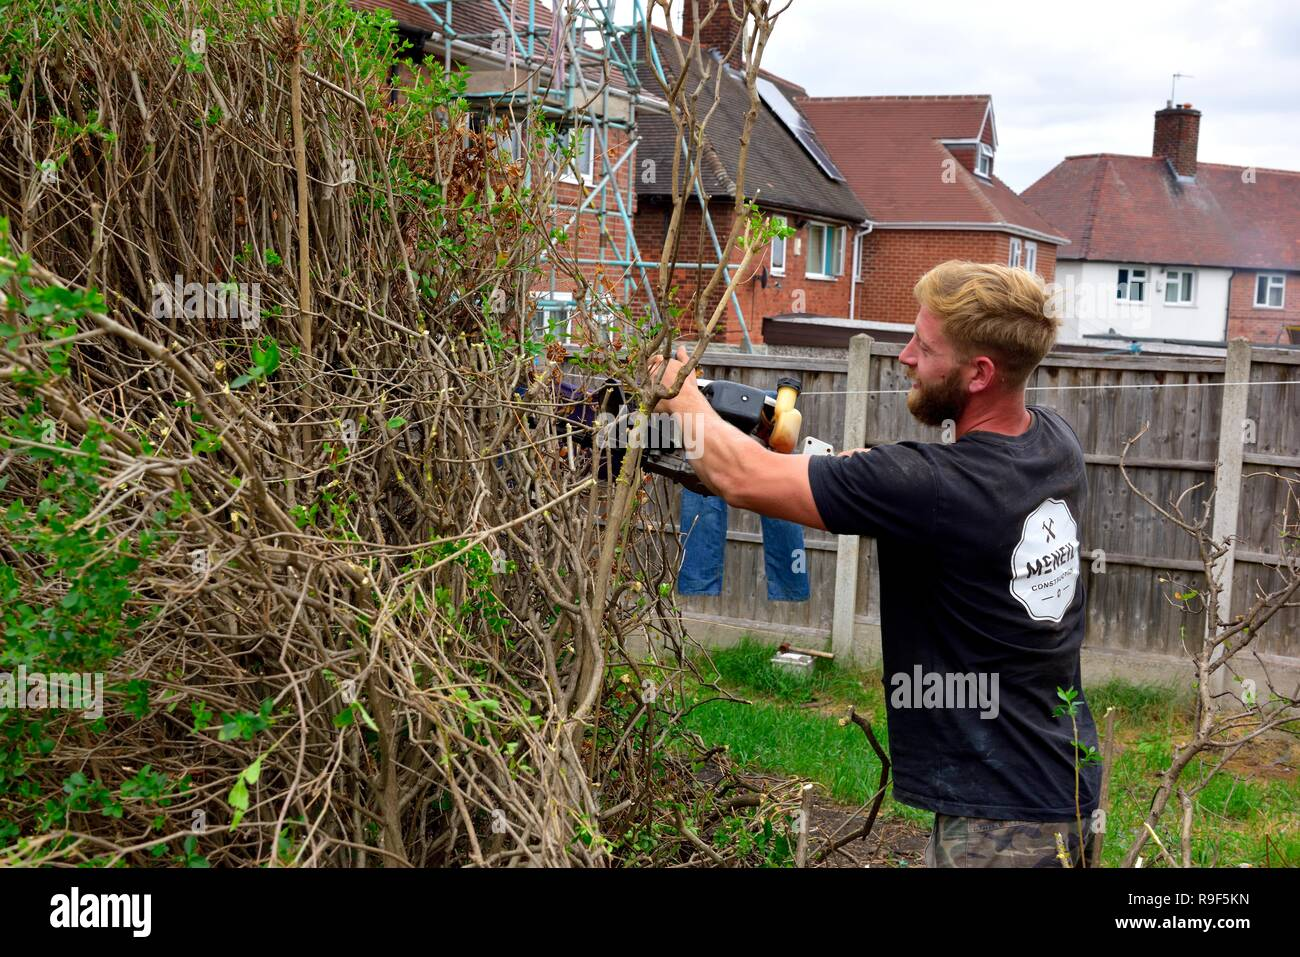 Worker cutting down a hedge in a residential back garden,Nottingham,UK - Stock Image